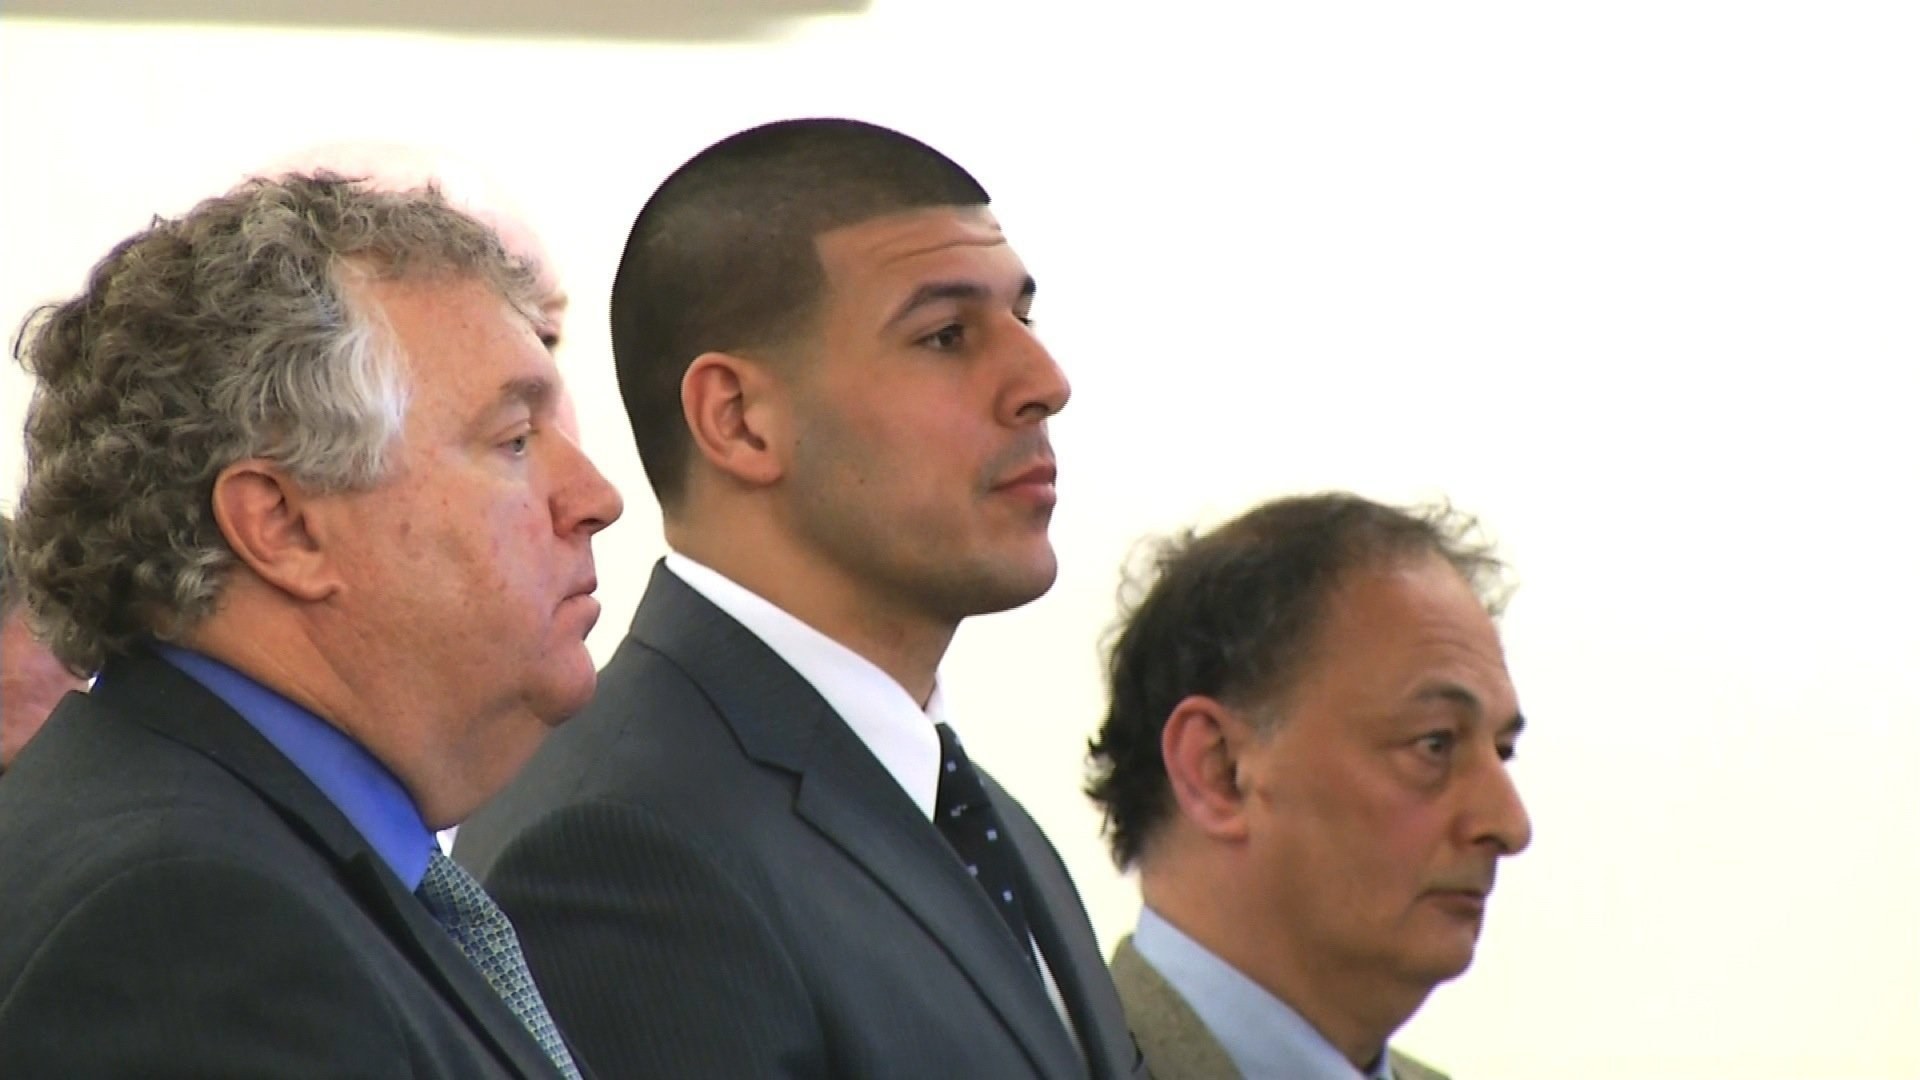 Convicted murderer and ex-NFL star Aaron Hernandez was found hanged in his prison cell. (Pool photo via CNN)